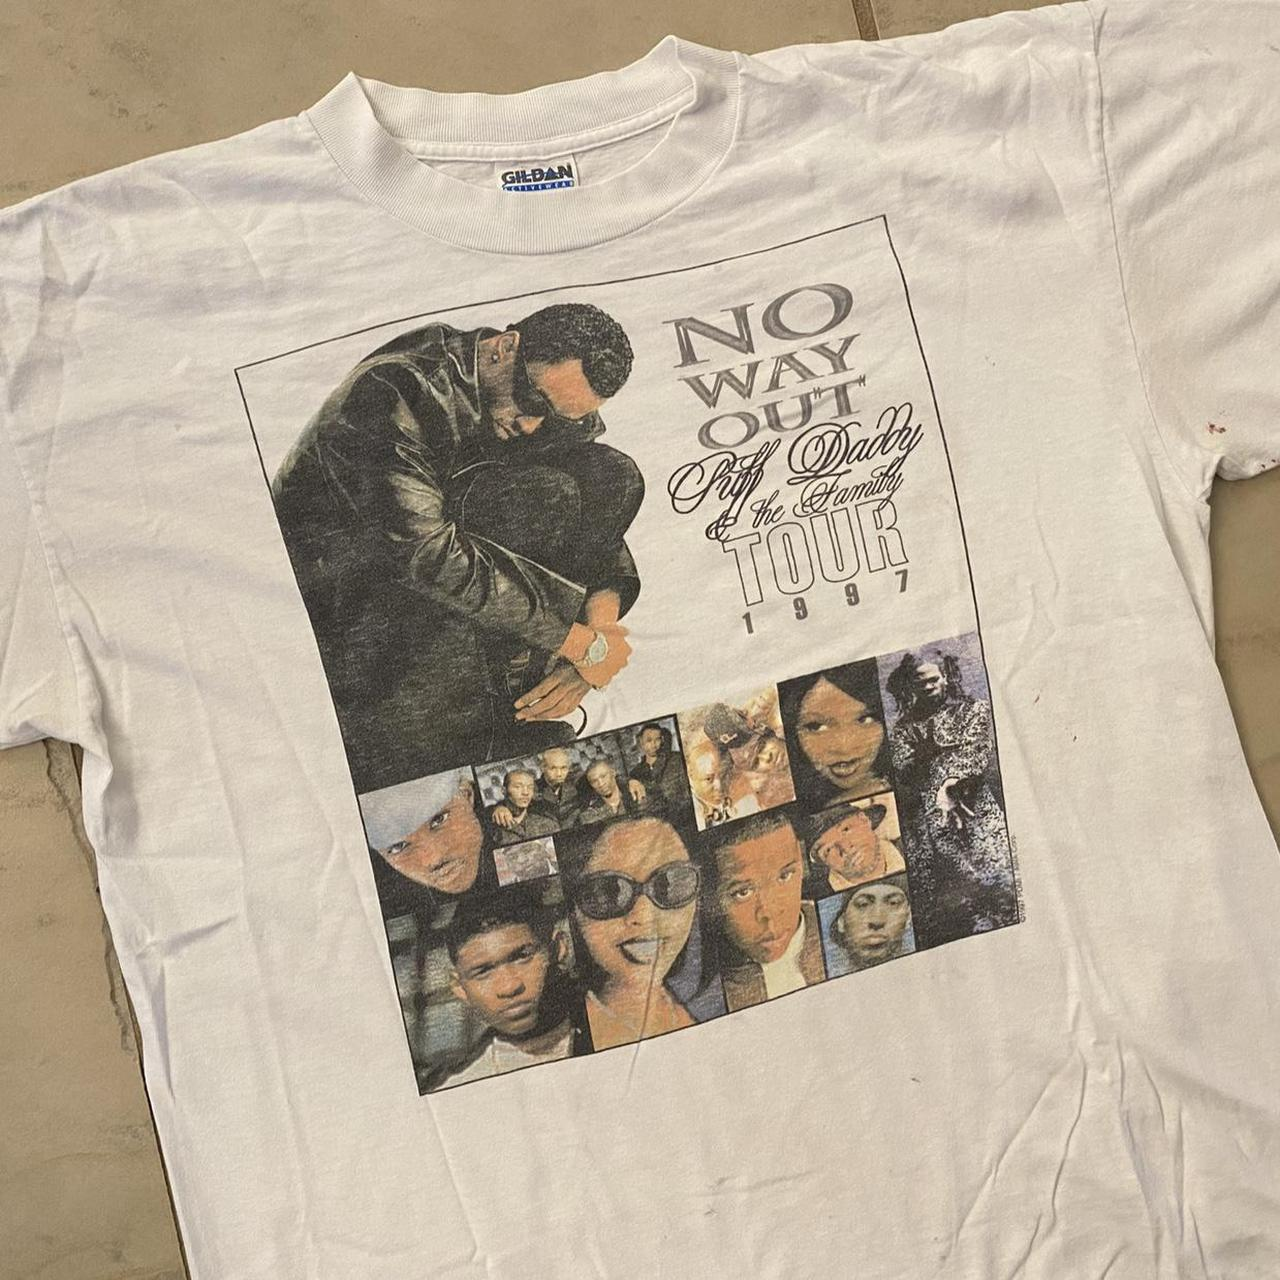 Product Image 1 - Vintage 1997 Puff Daddy &